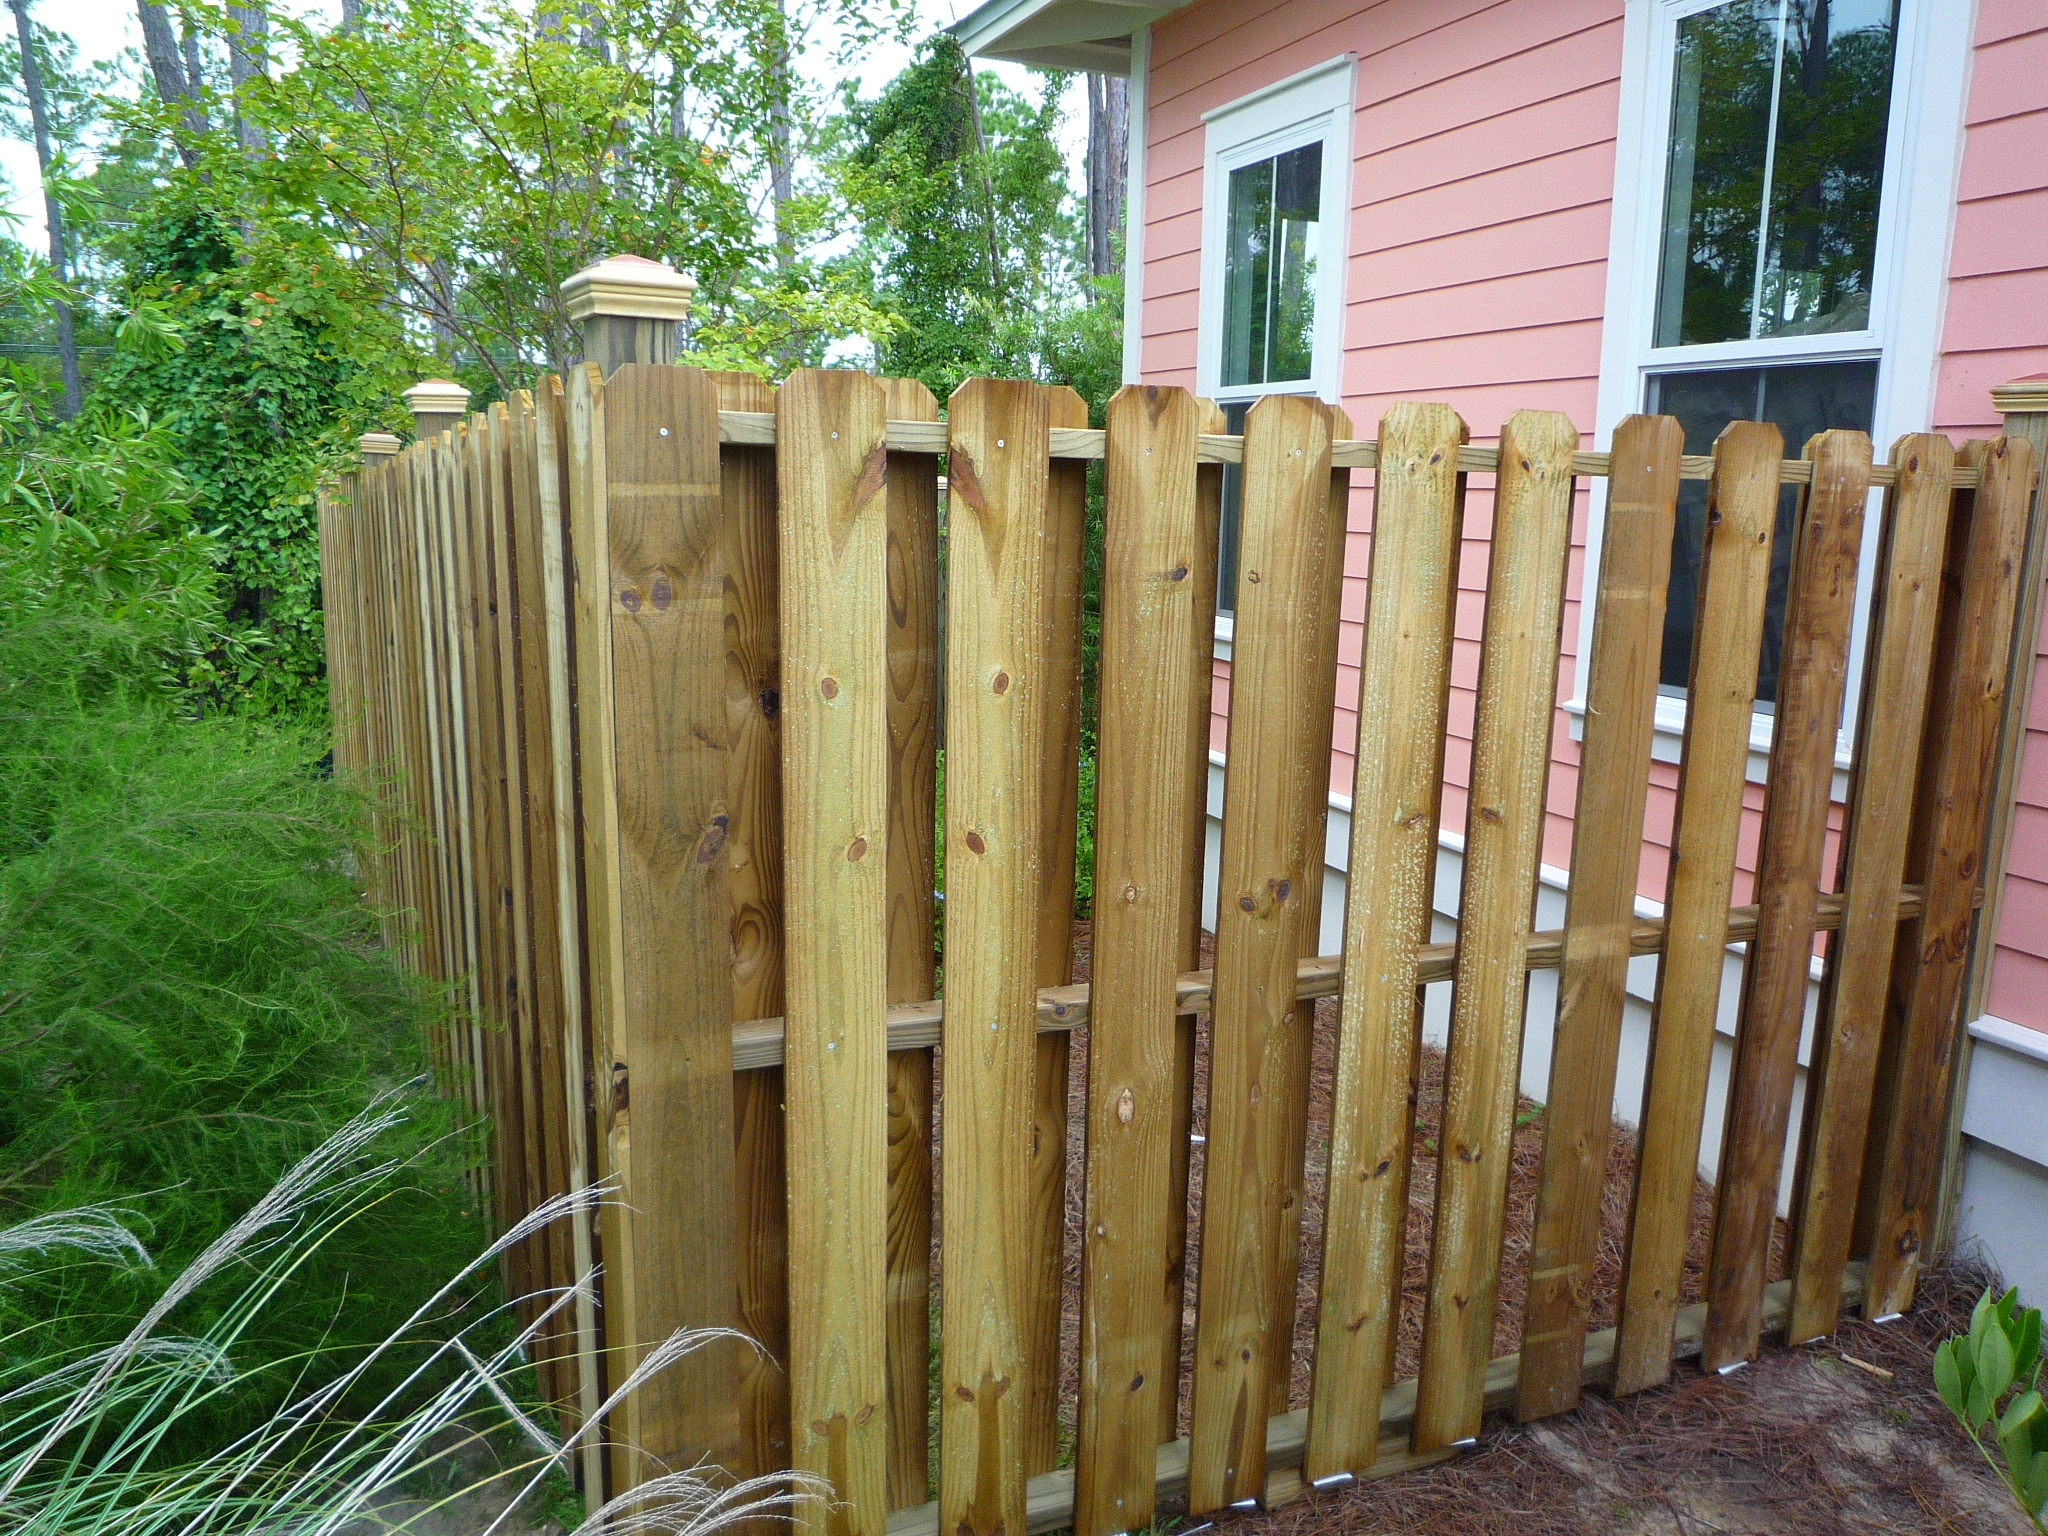 approved fence design 6 foot shadow box with 1x6 dog ear slats with 35 inch gap